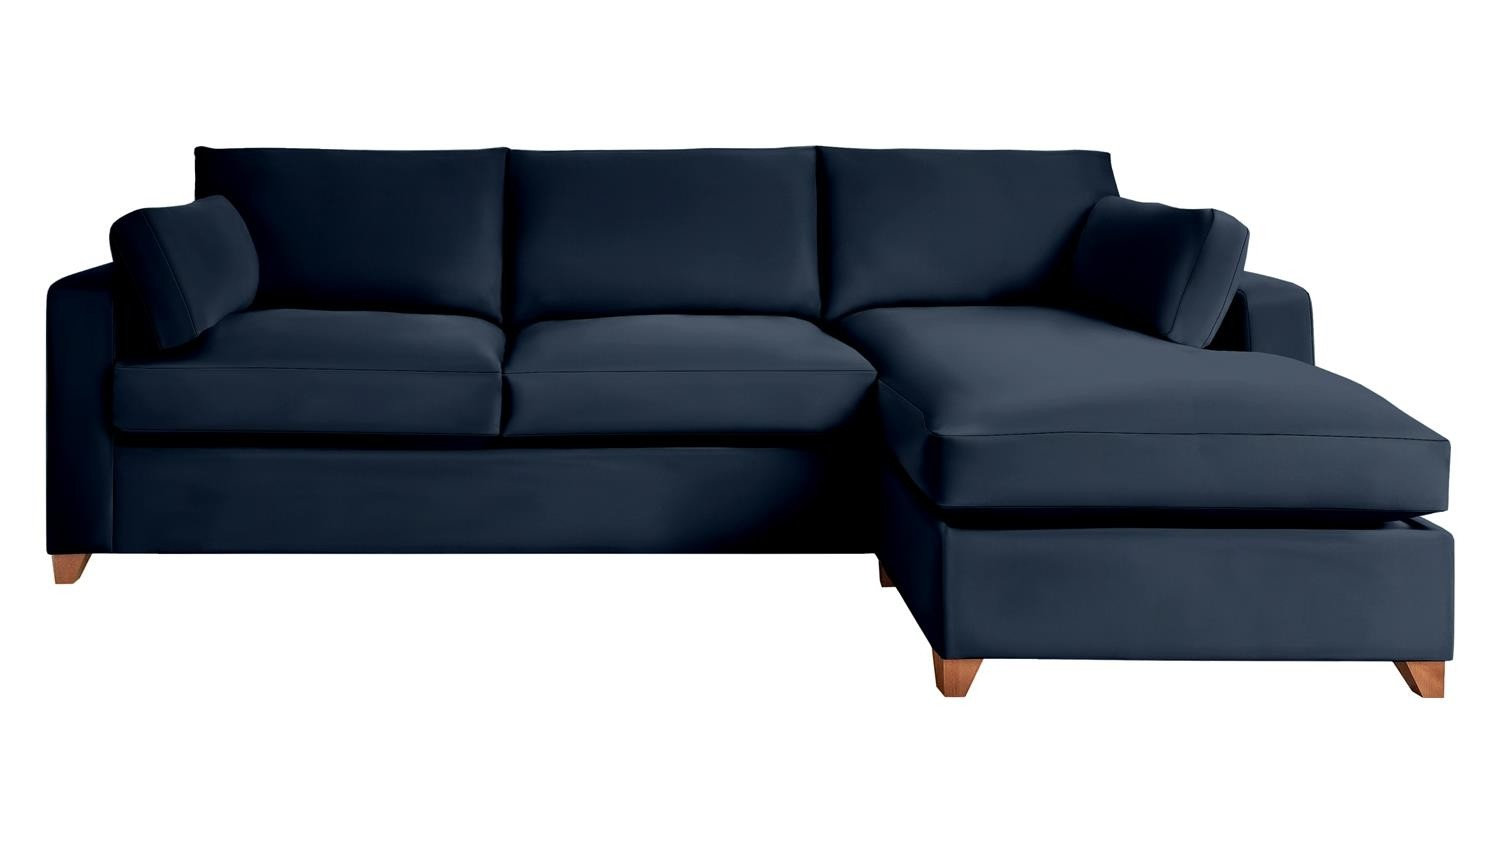 The Bayfield 5 Seater Right Chaise Sofa Bed